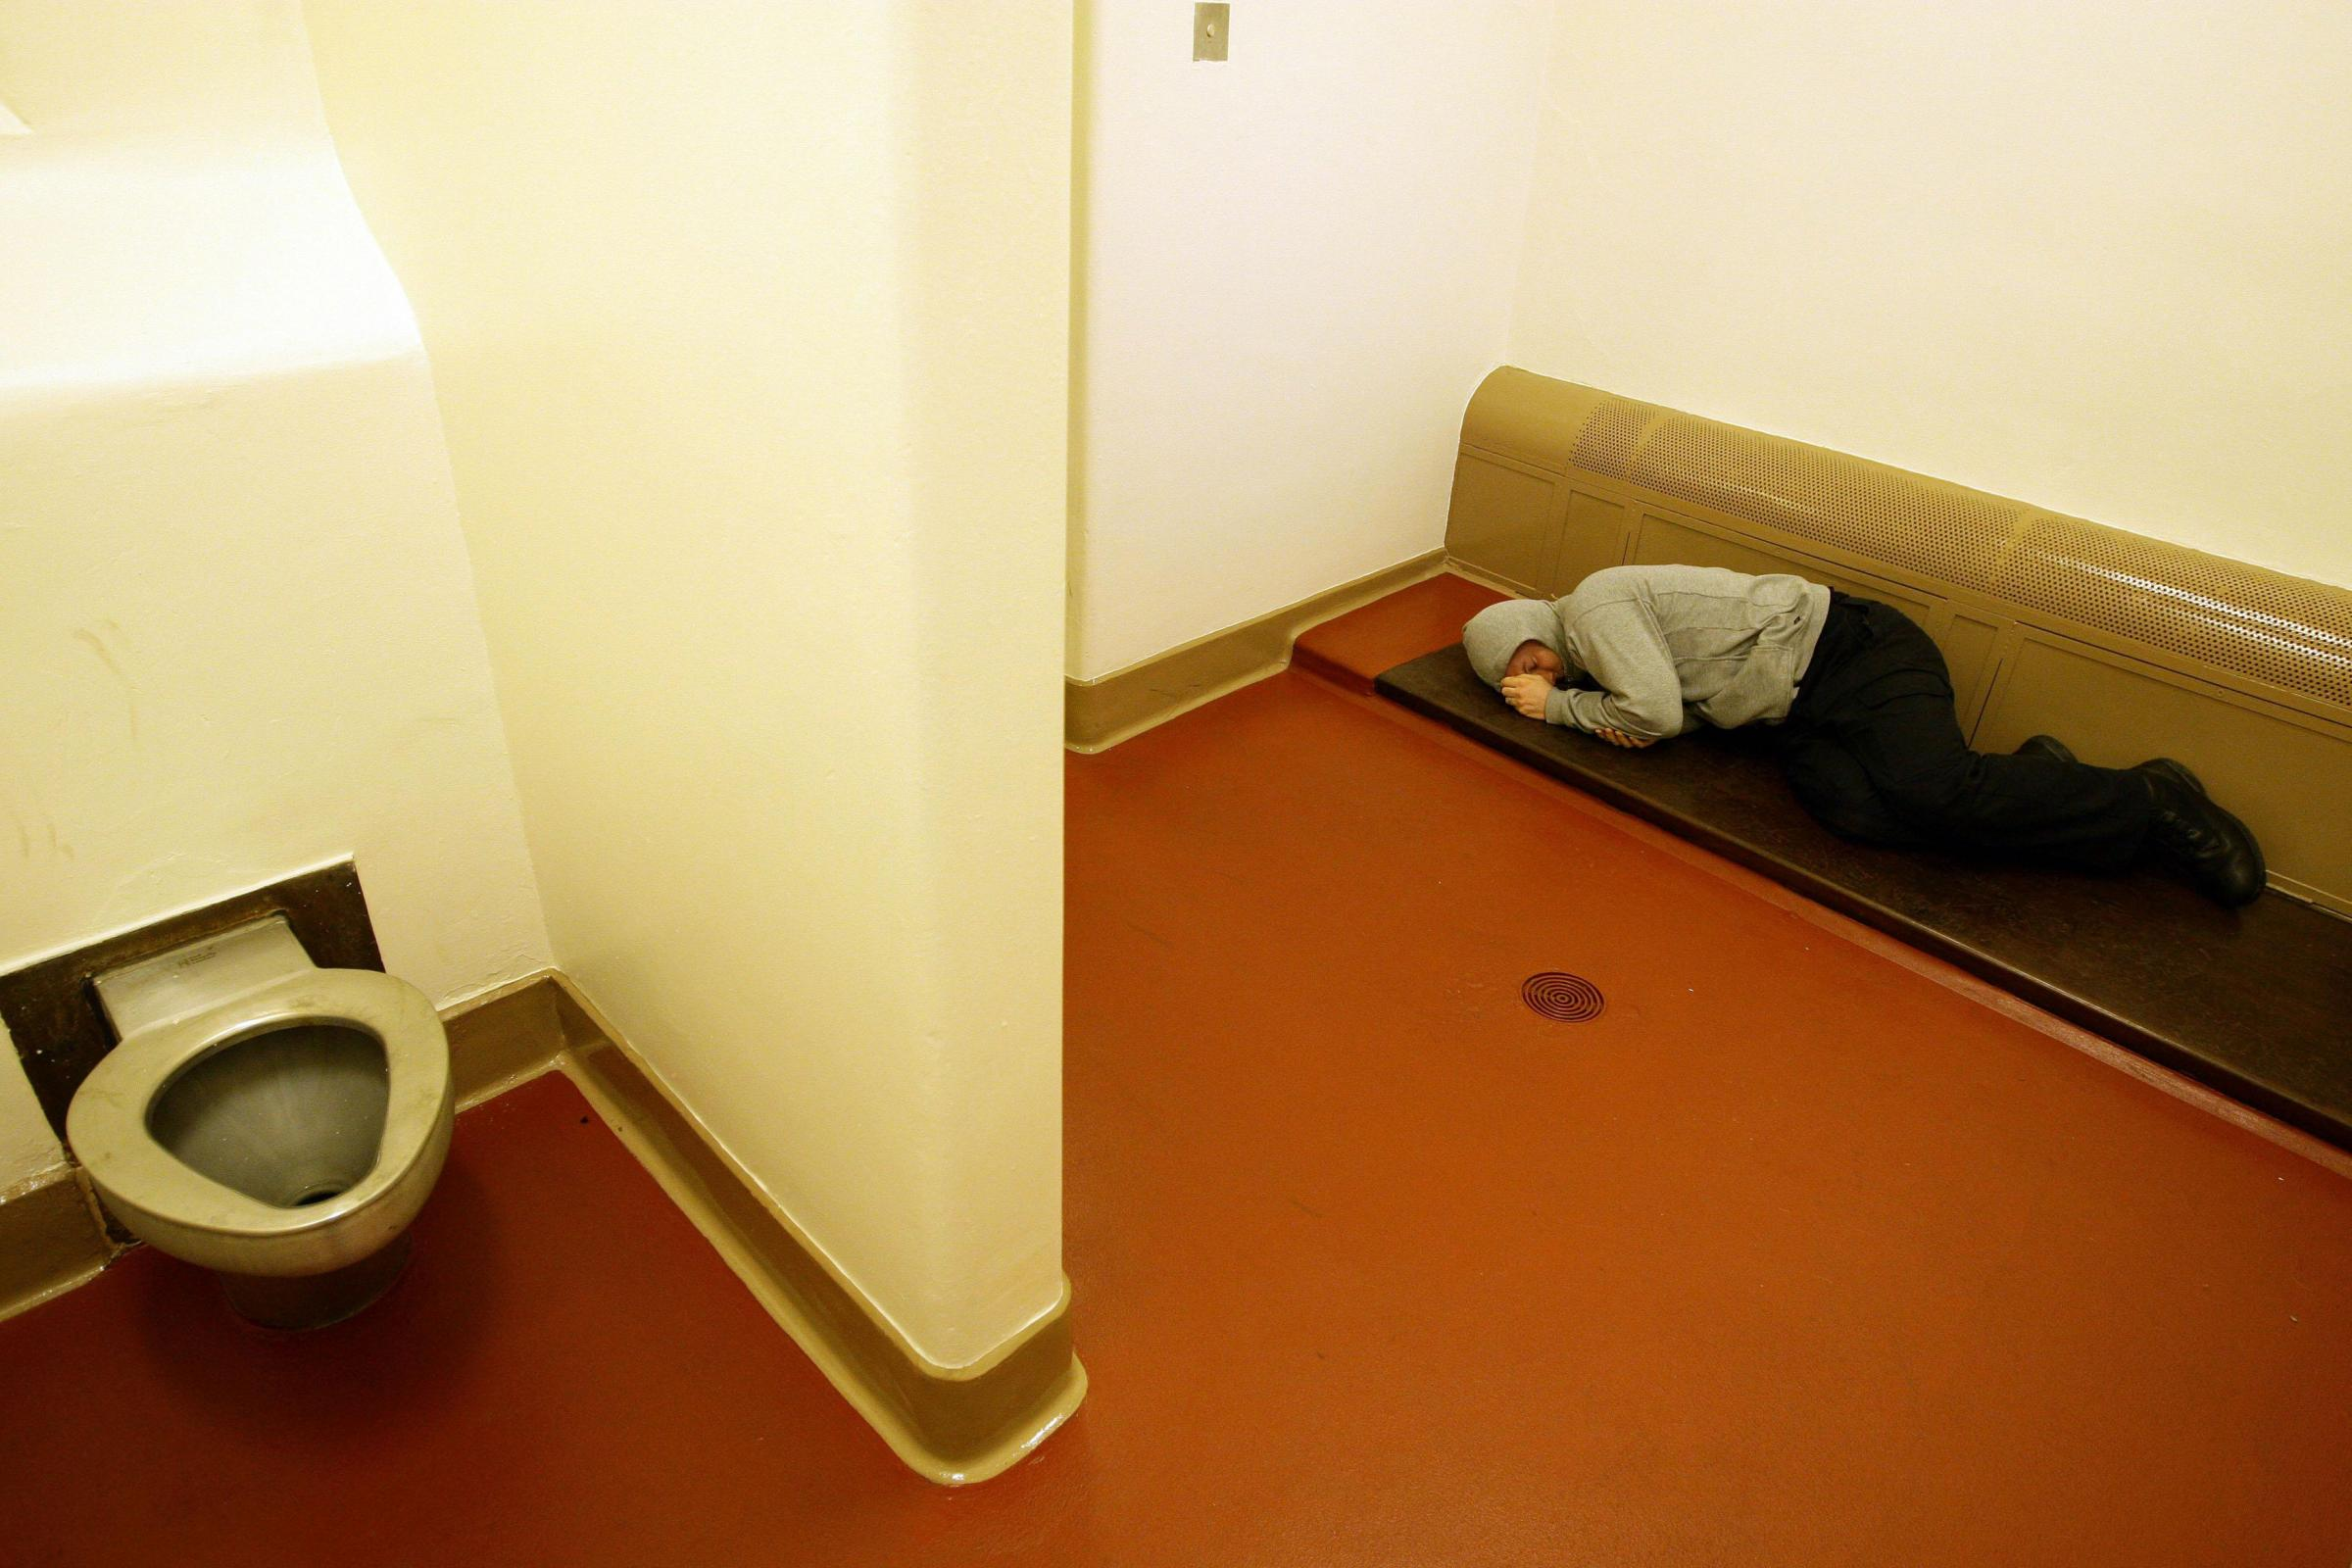 Drunk man in police cell hurled poop at CCTV camera | Western Telegraph